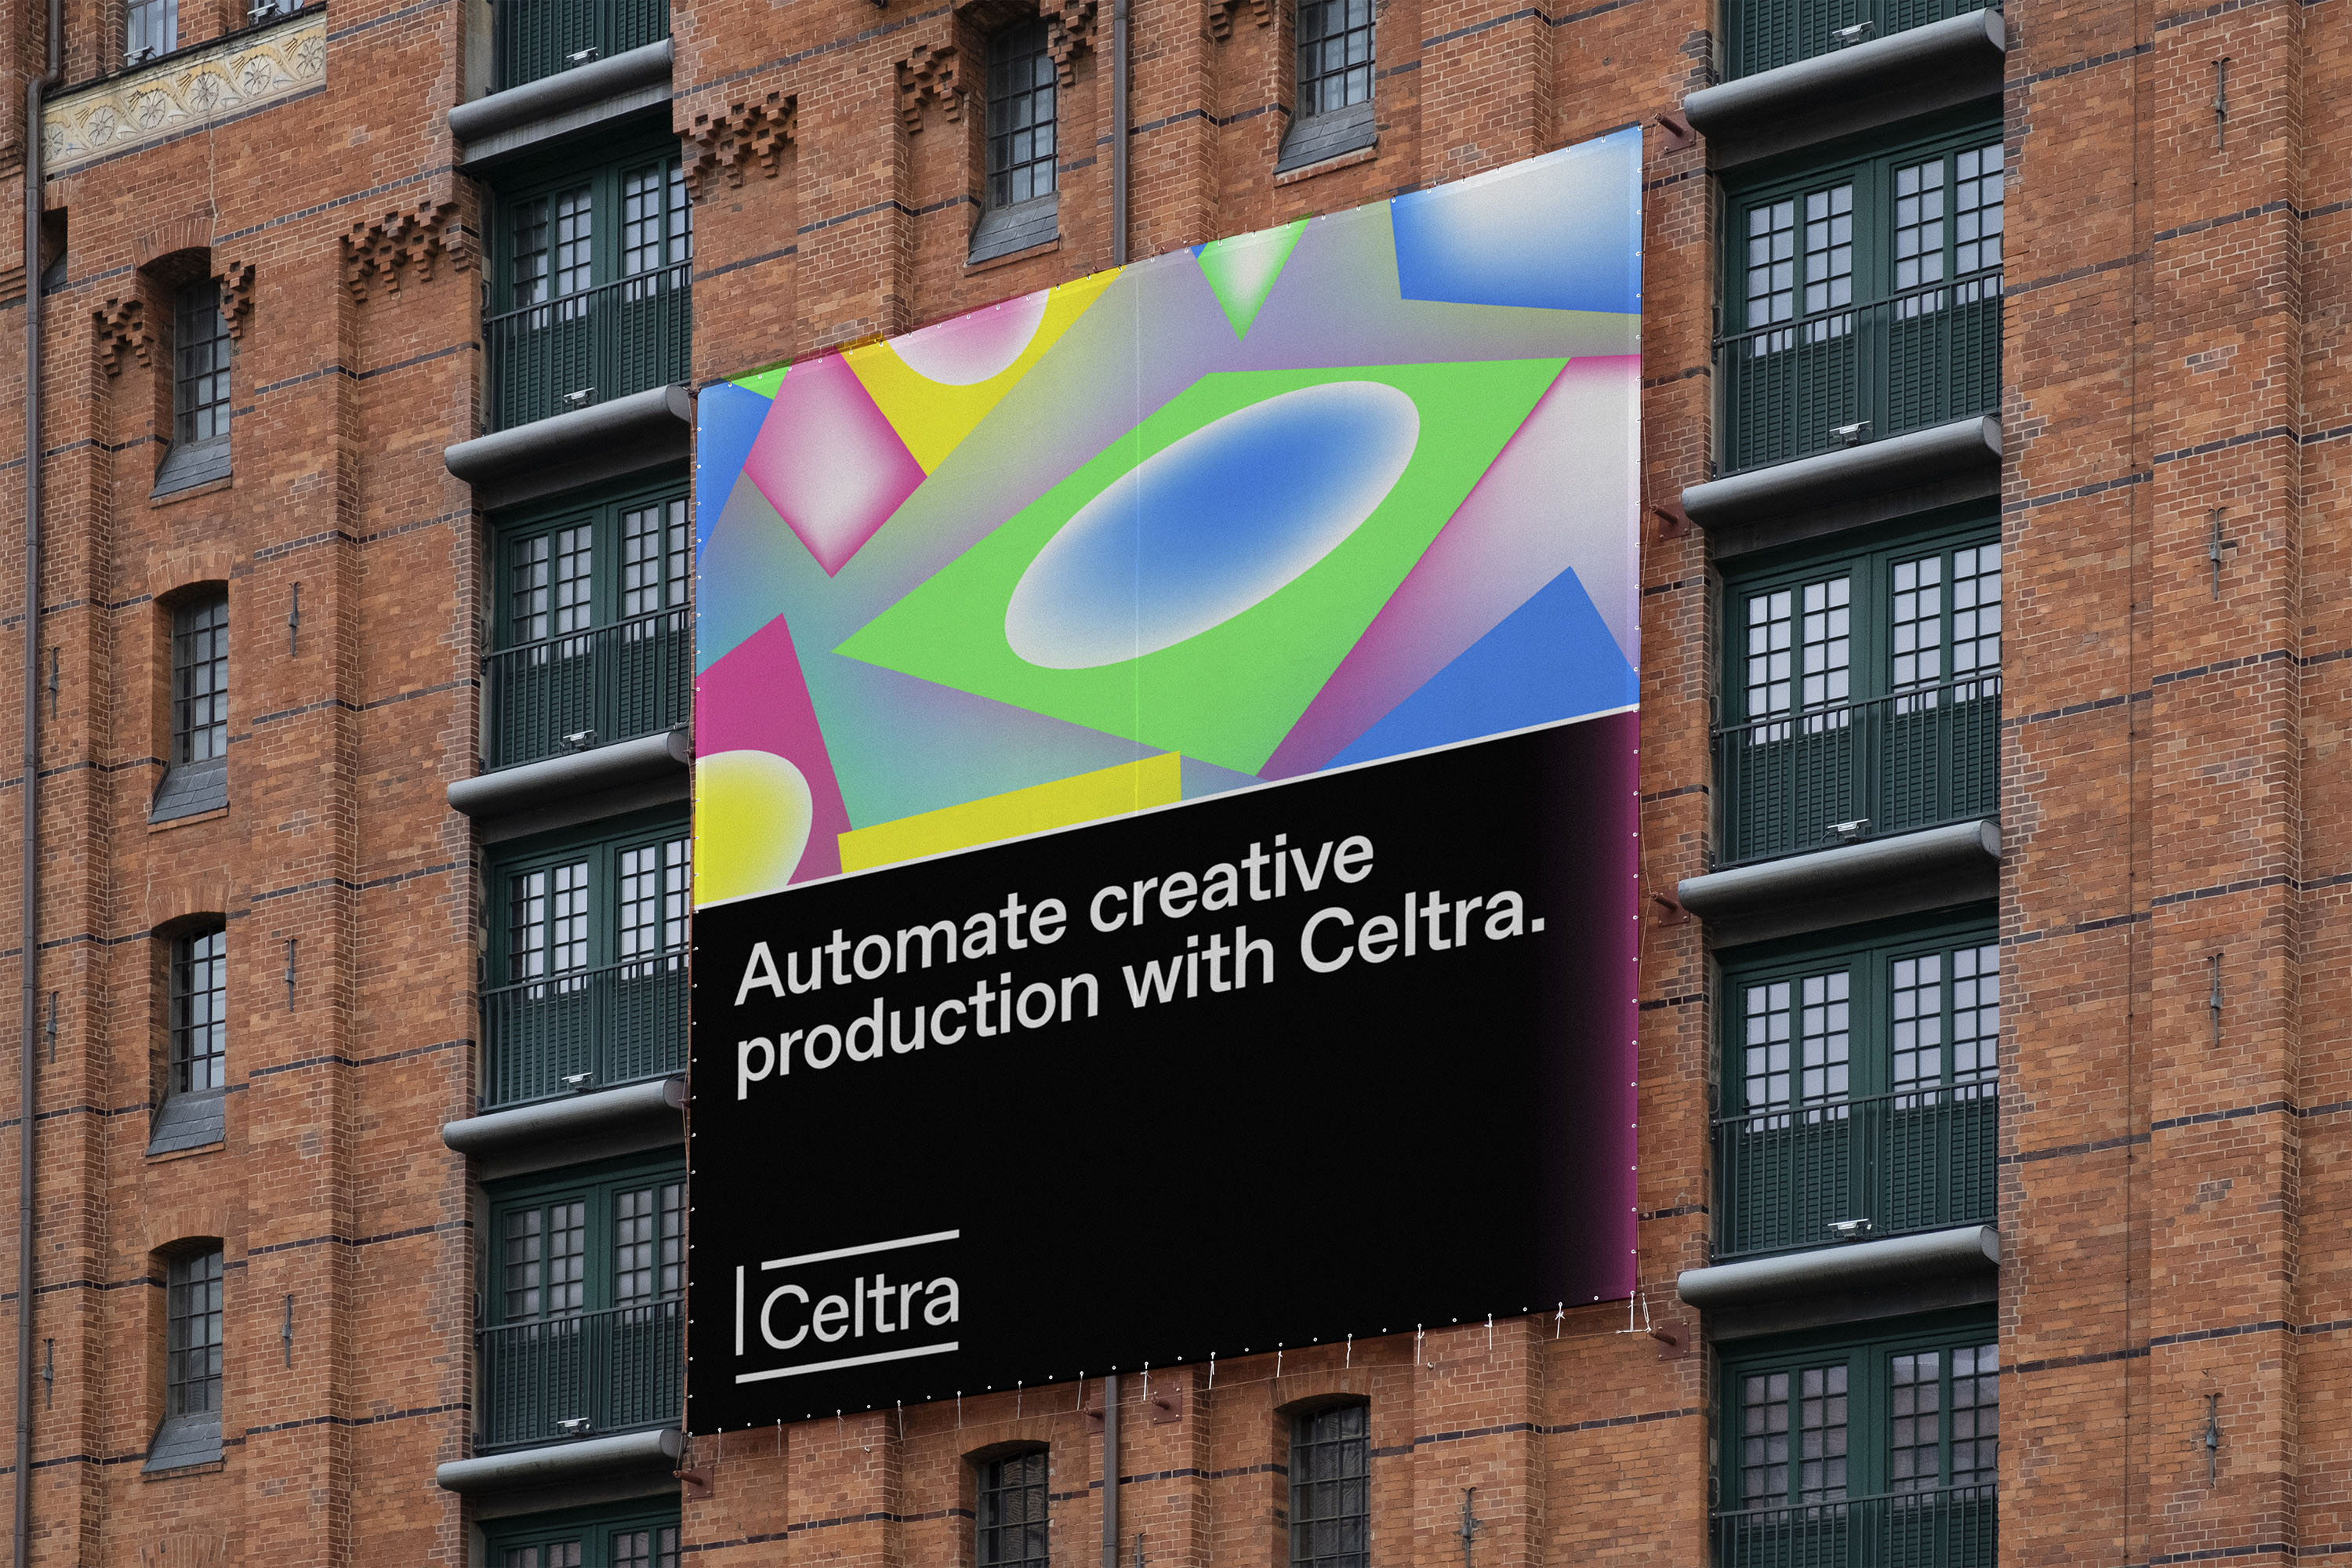 A mockup of Celtra outdoor ad.